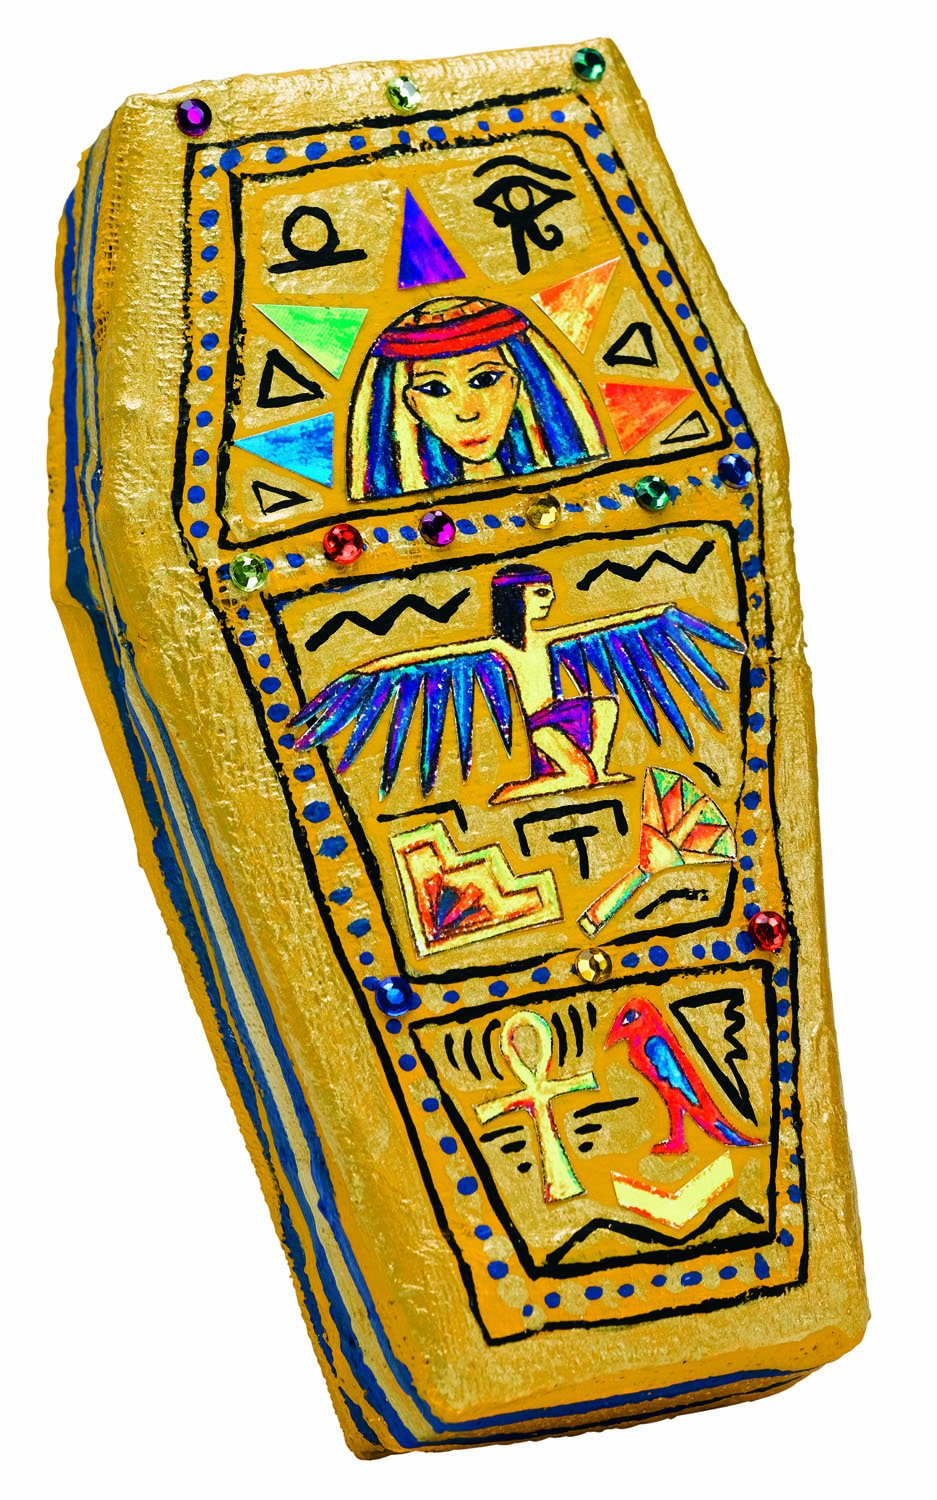 egypt projects Here's our collection of fun, original craft ideas for children to accompany your ancient egypt exploration at home or at school you should find something for all.